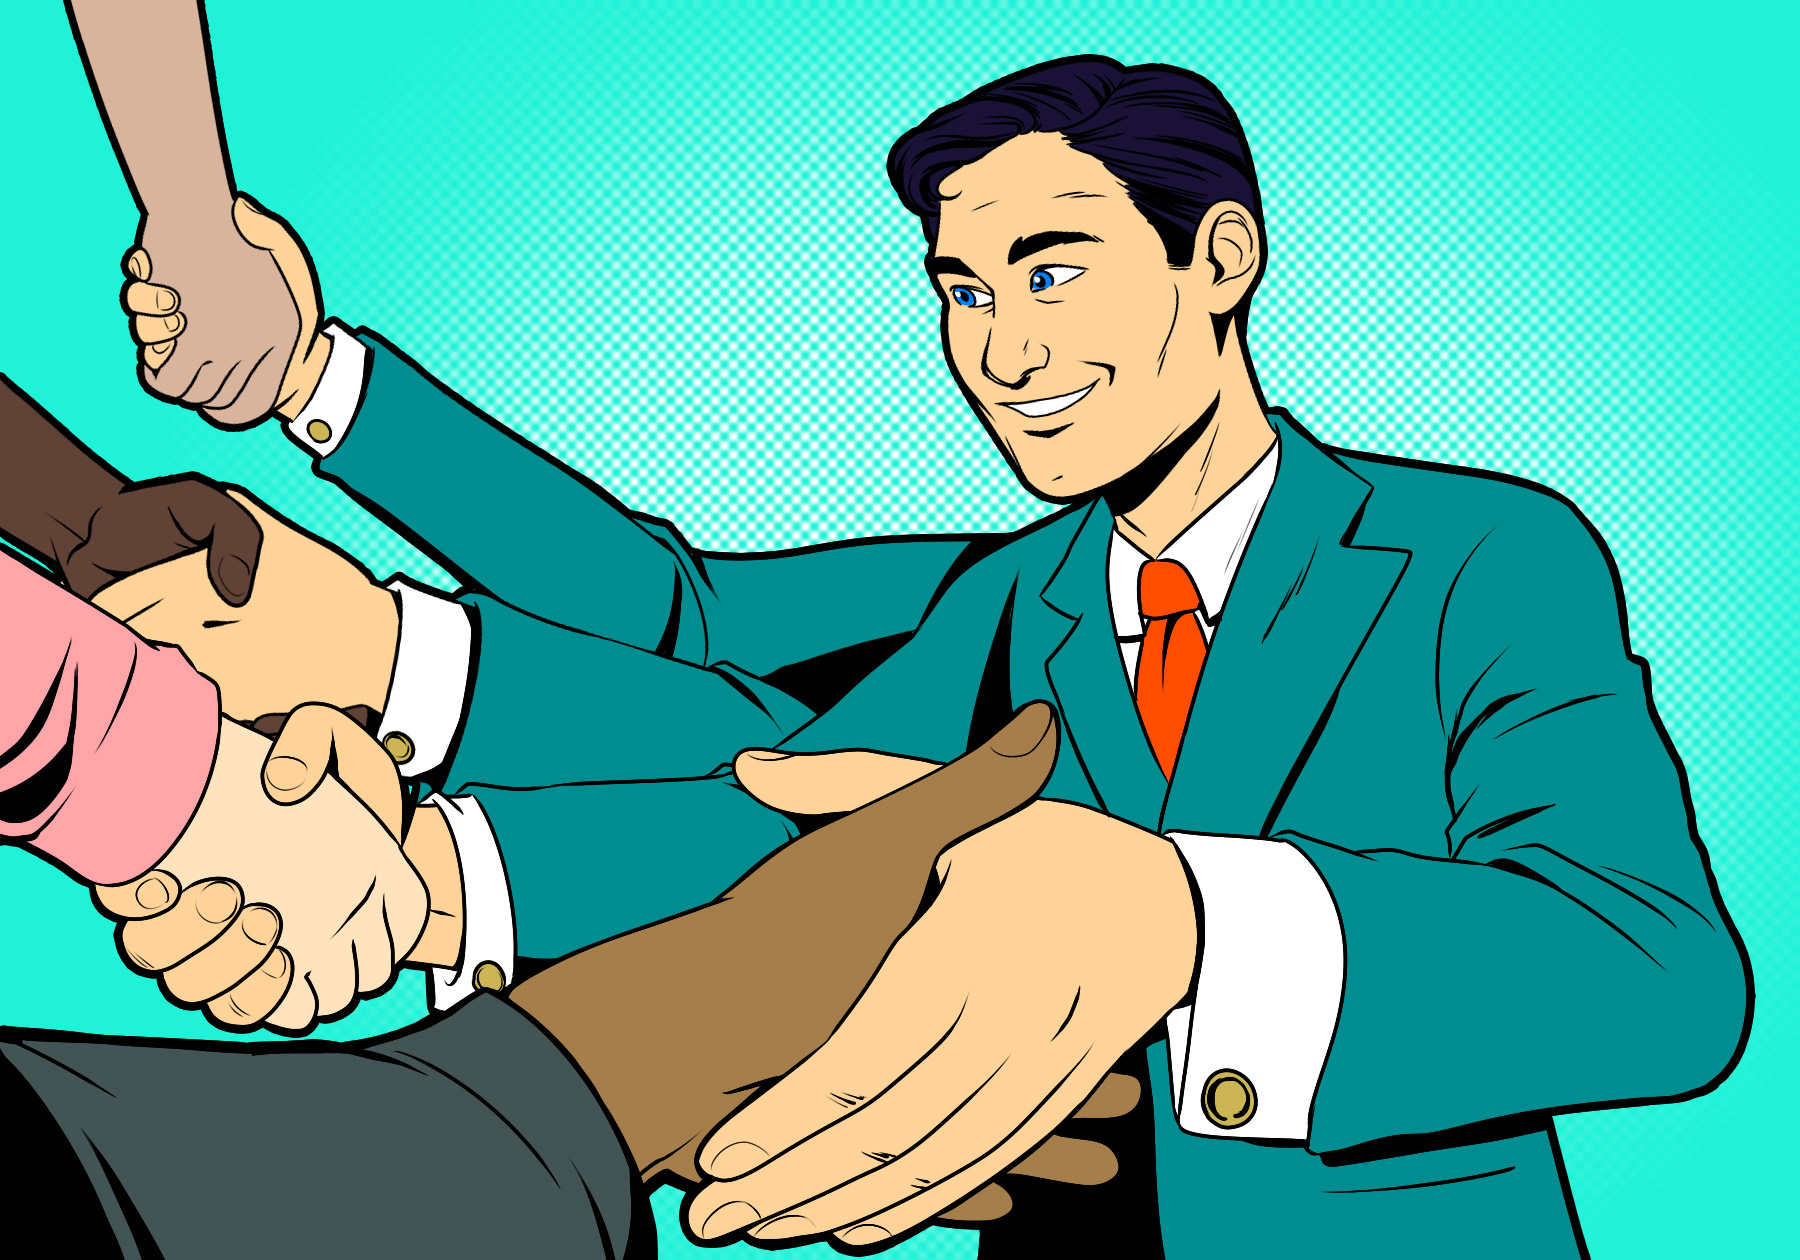 Illustration for a article on account-based marketing